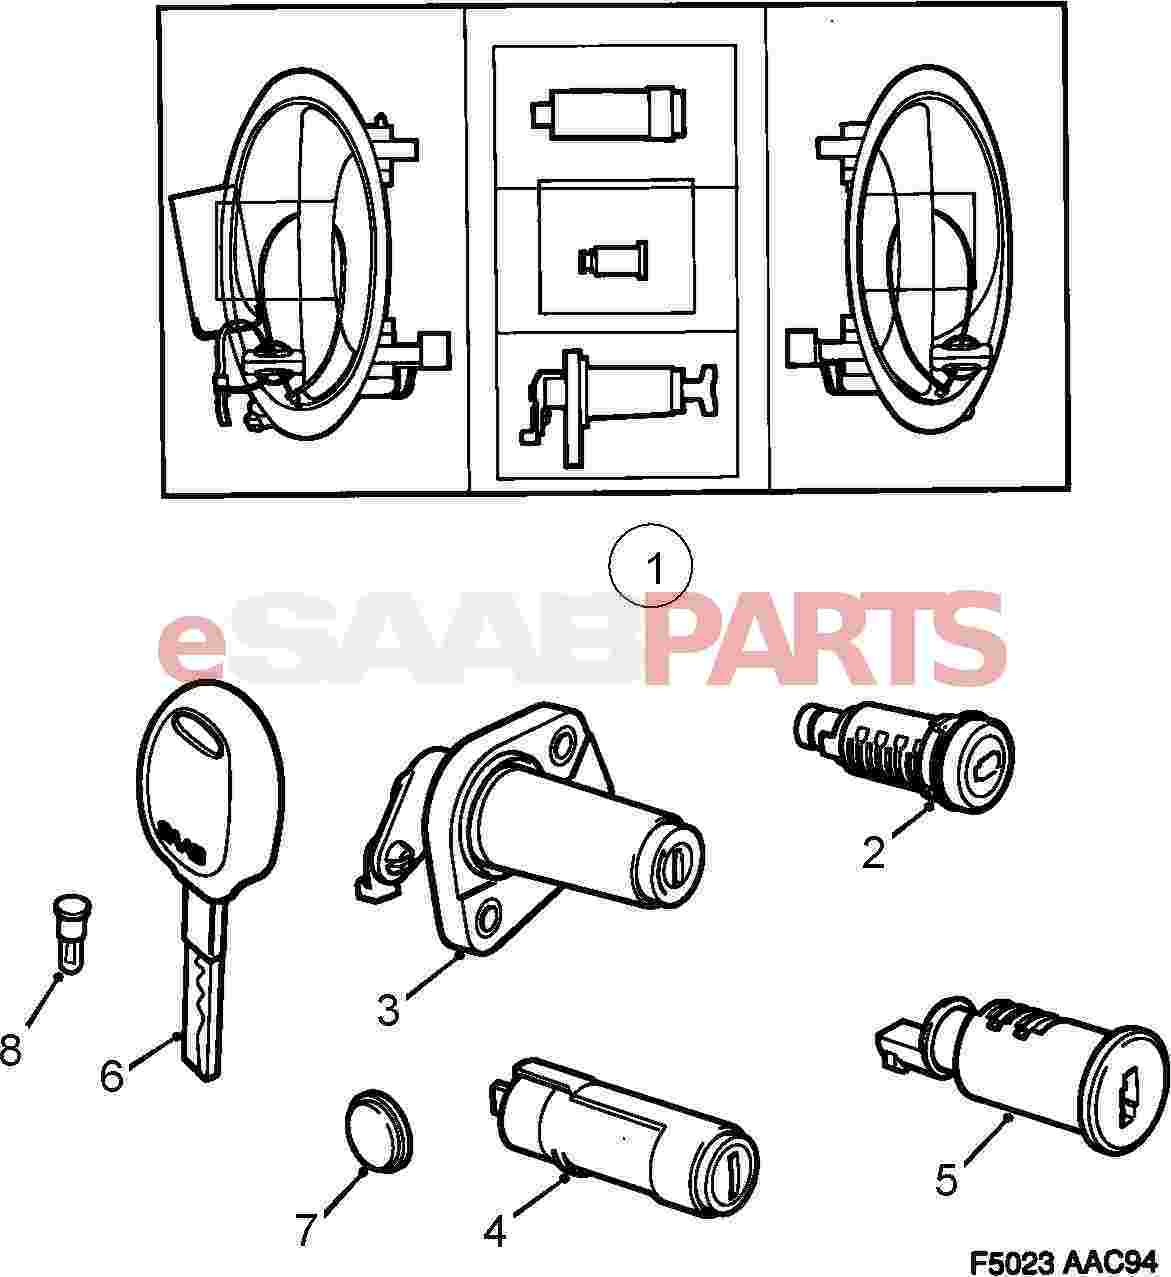 Wiring Diagrams Also 1970 Vw Bus Wiring Diagram As Well Saab 900